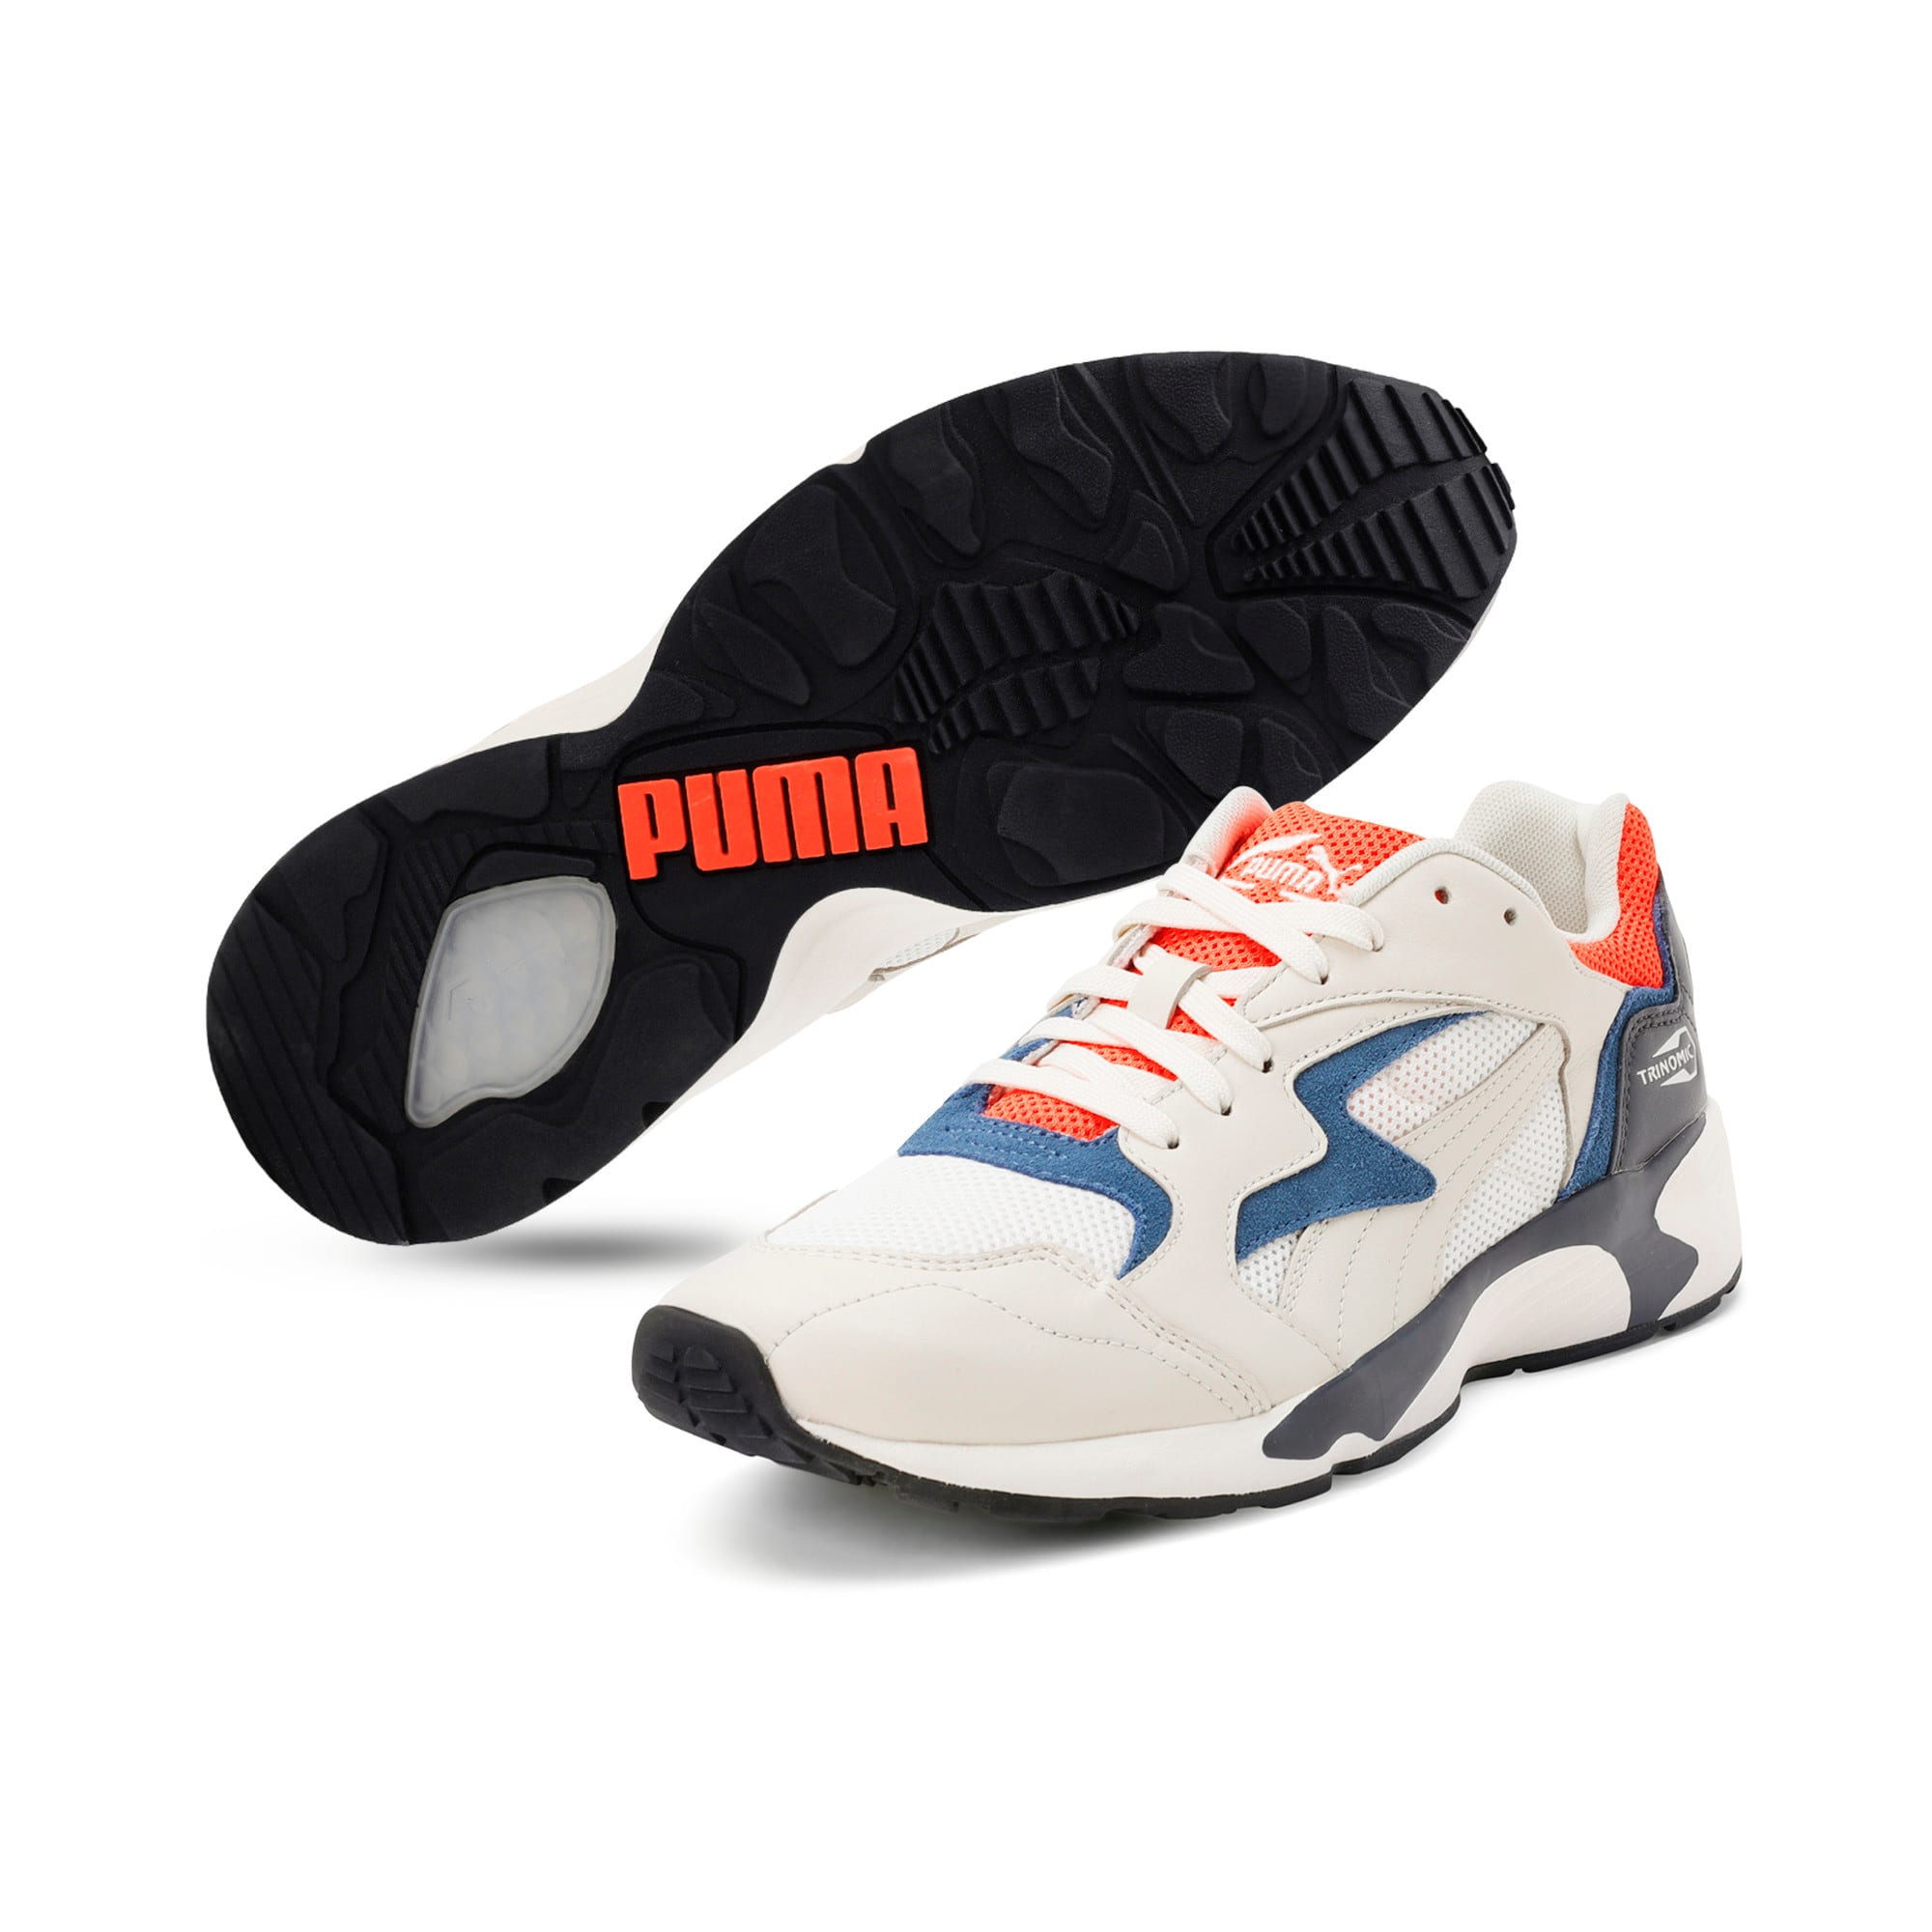 Thumbnail 2 of Prevail Classic Trainers, Whisper White-Nrgy Red, medium-IND